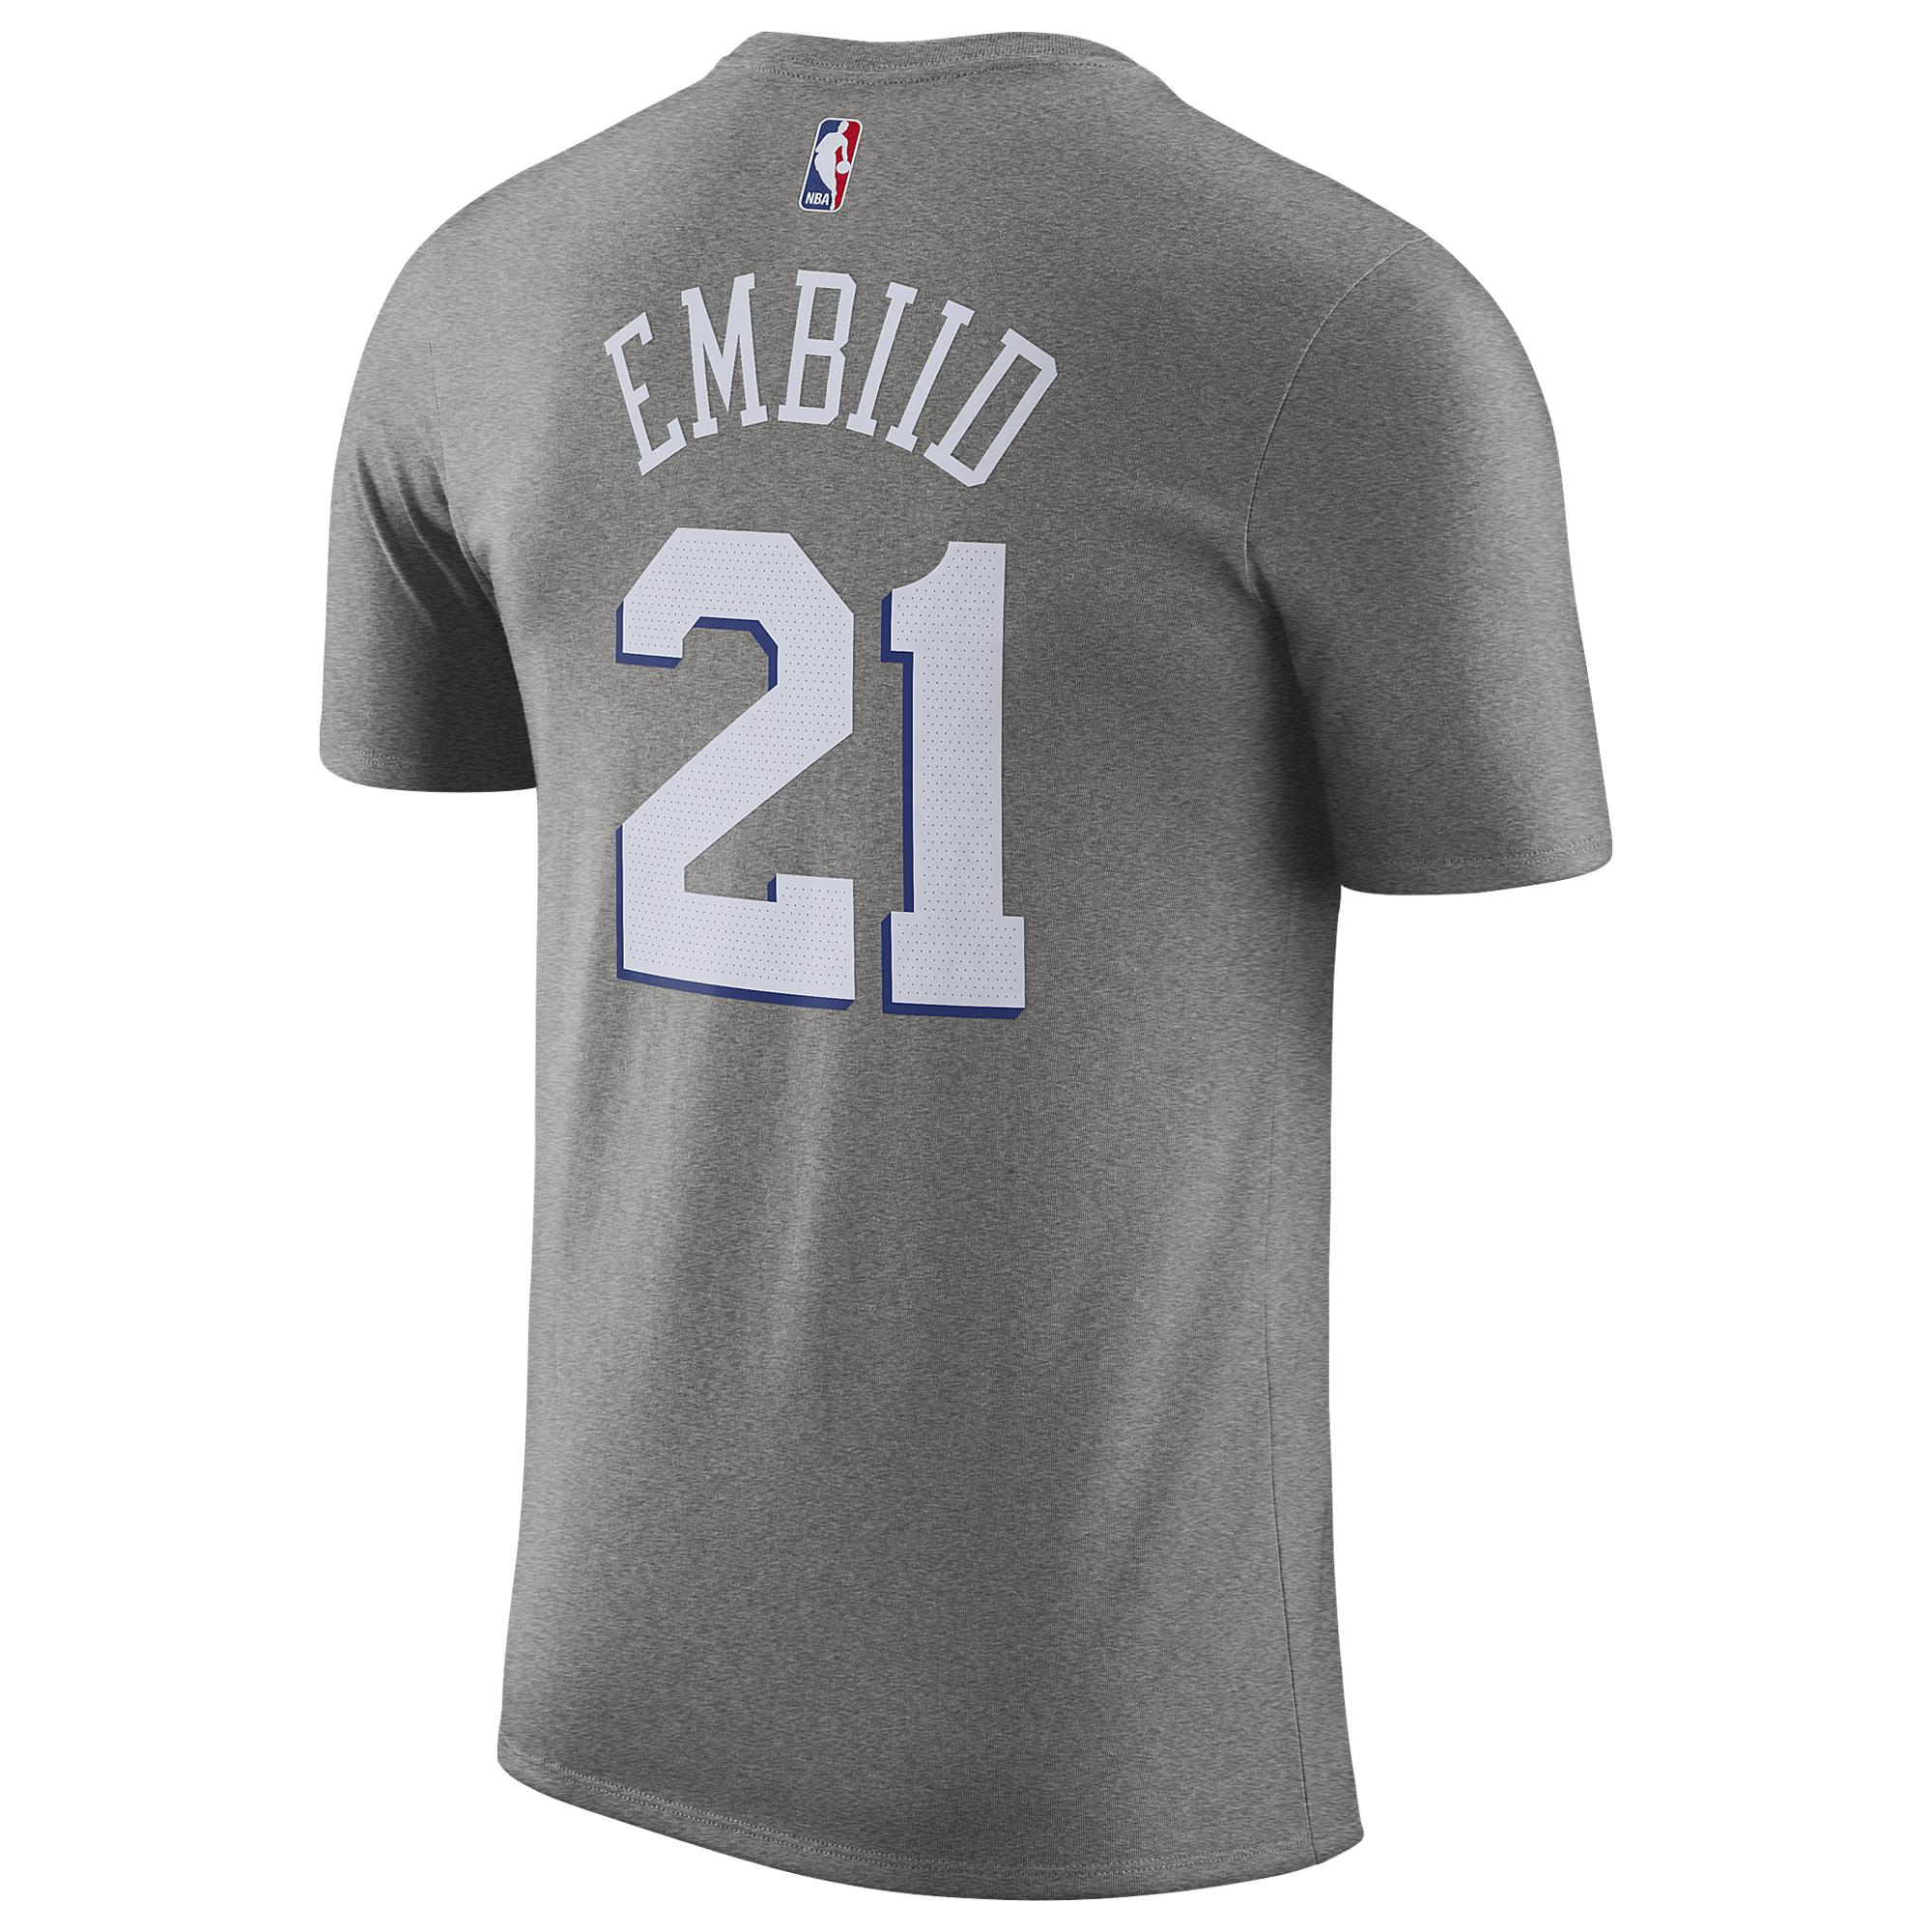 5b8662733 Nike Joel Embiid Nba City Edition Name & Number T-shirt in Gray for ...